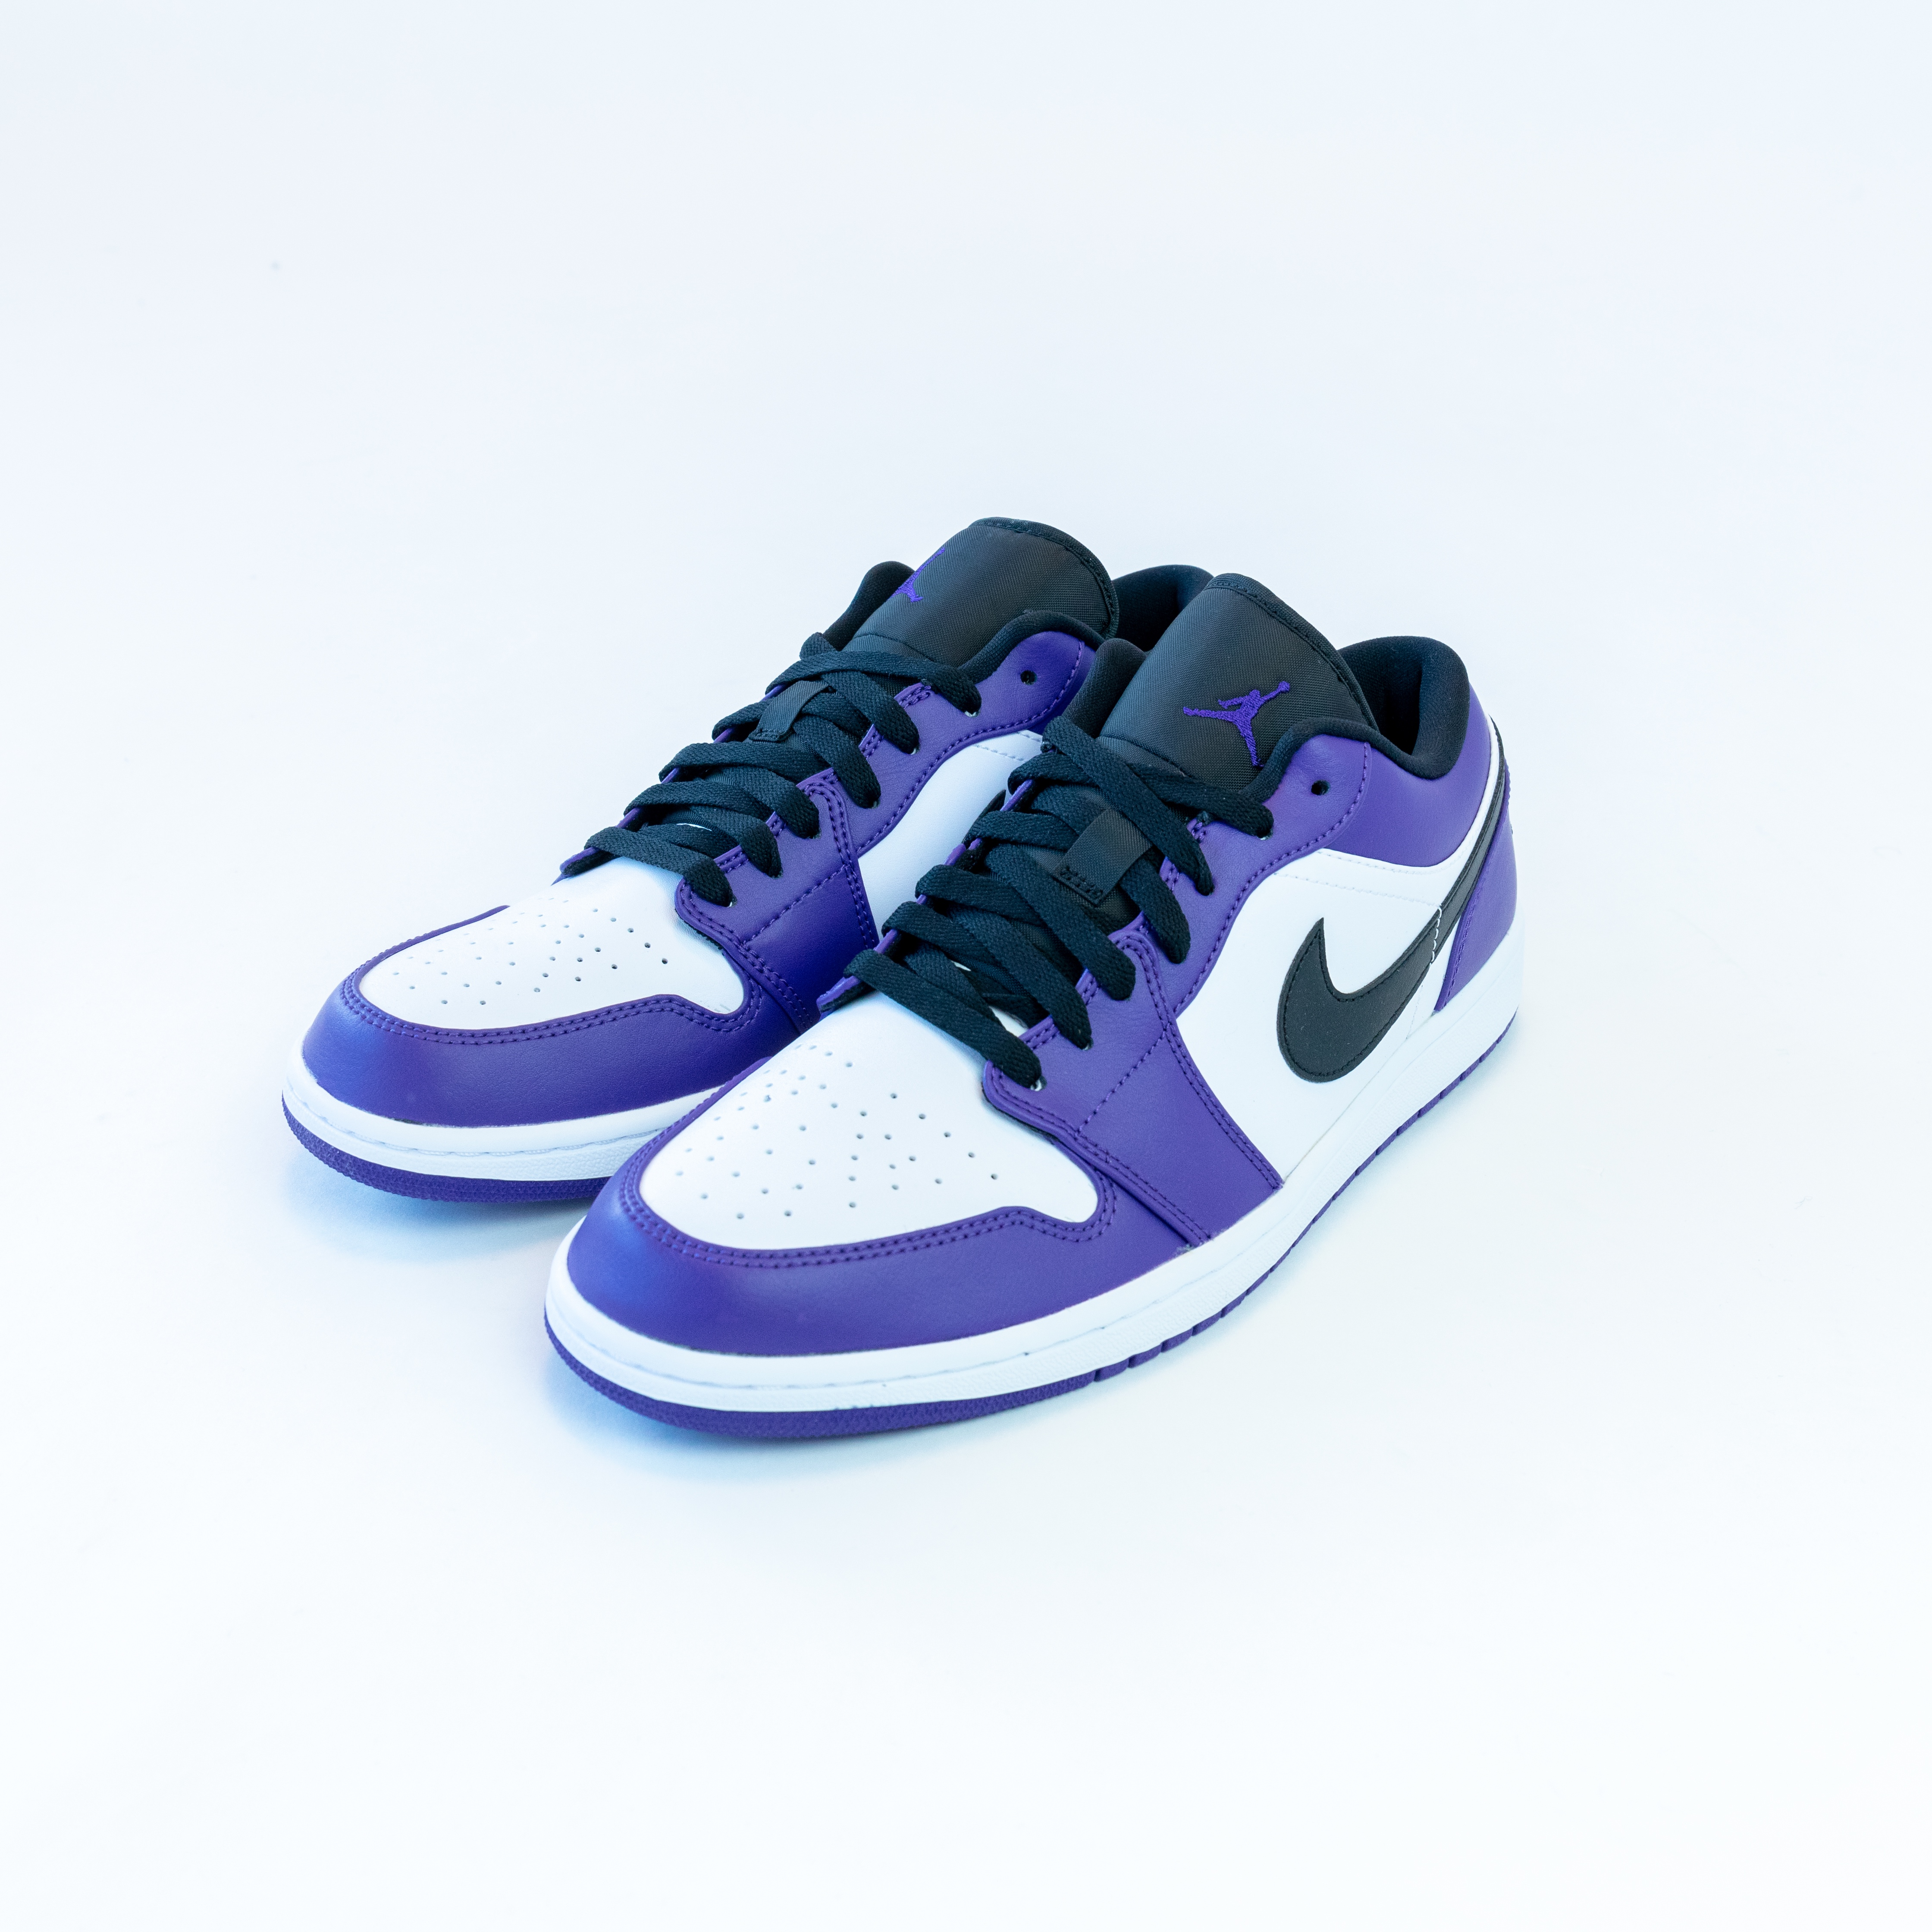 Product picture for Decked Out featuring a pair of purple Jordan shoes.